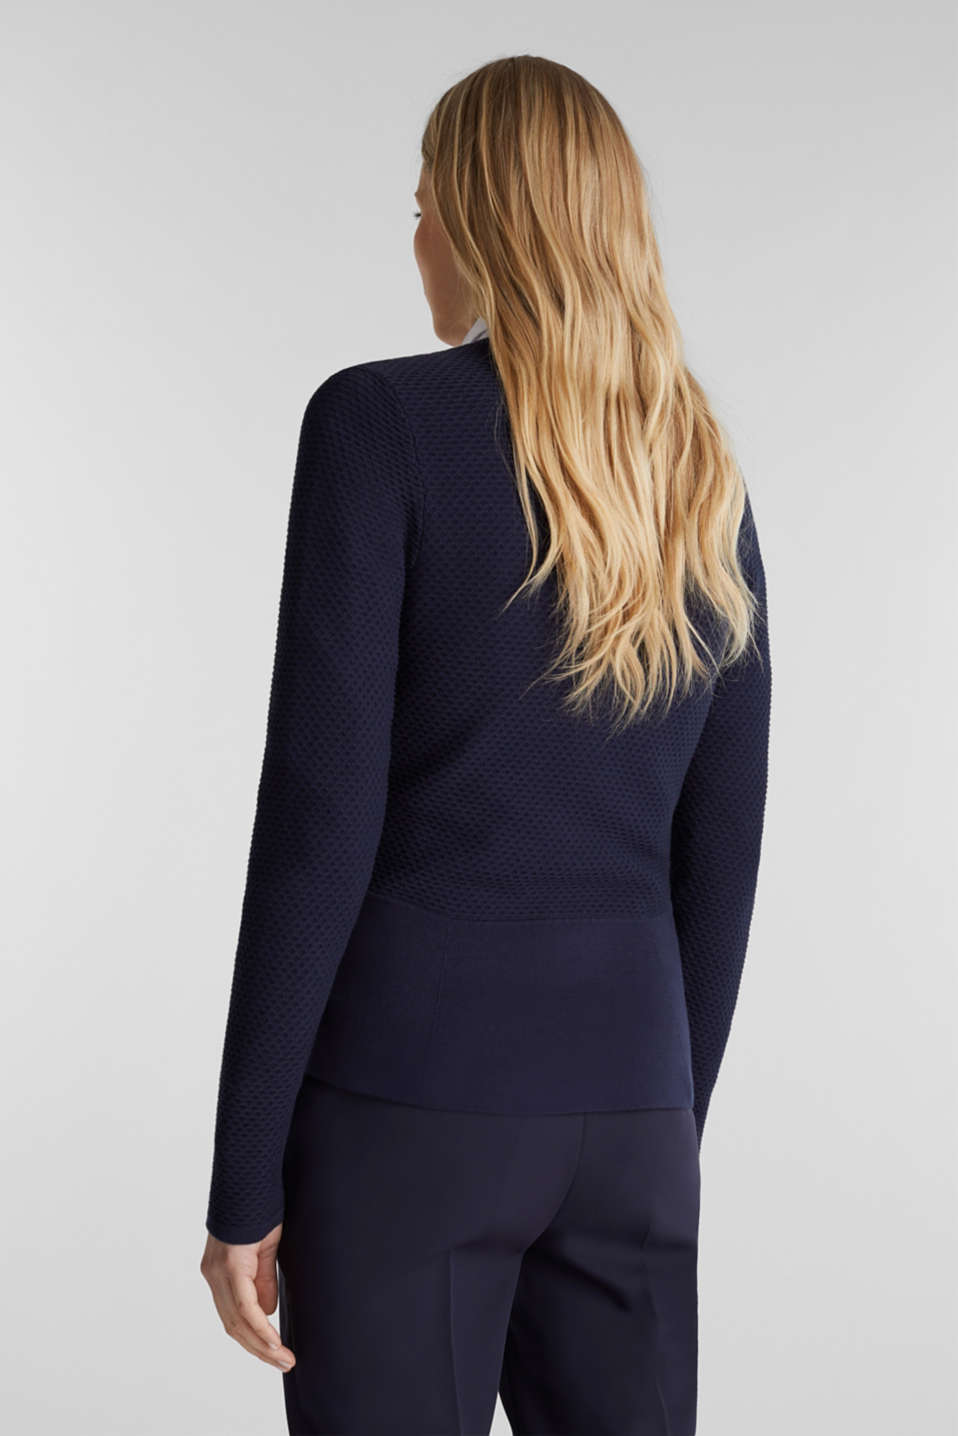 Textured cardigan with a peplum, NAVY, detail image number 3